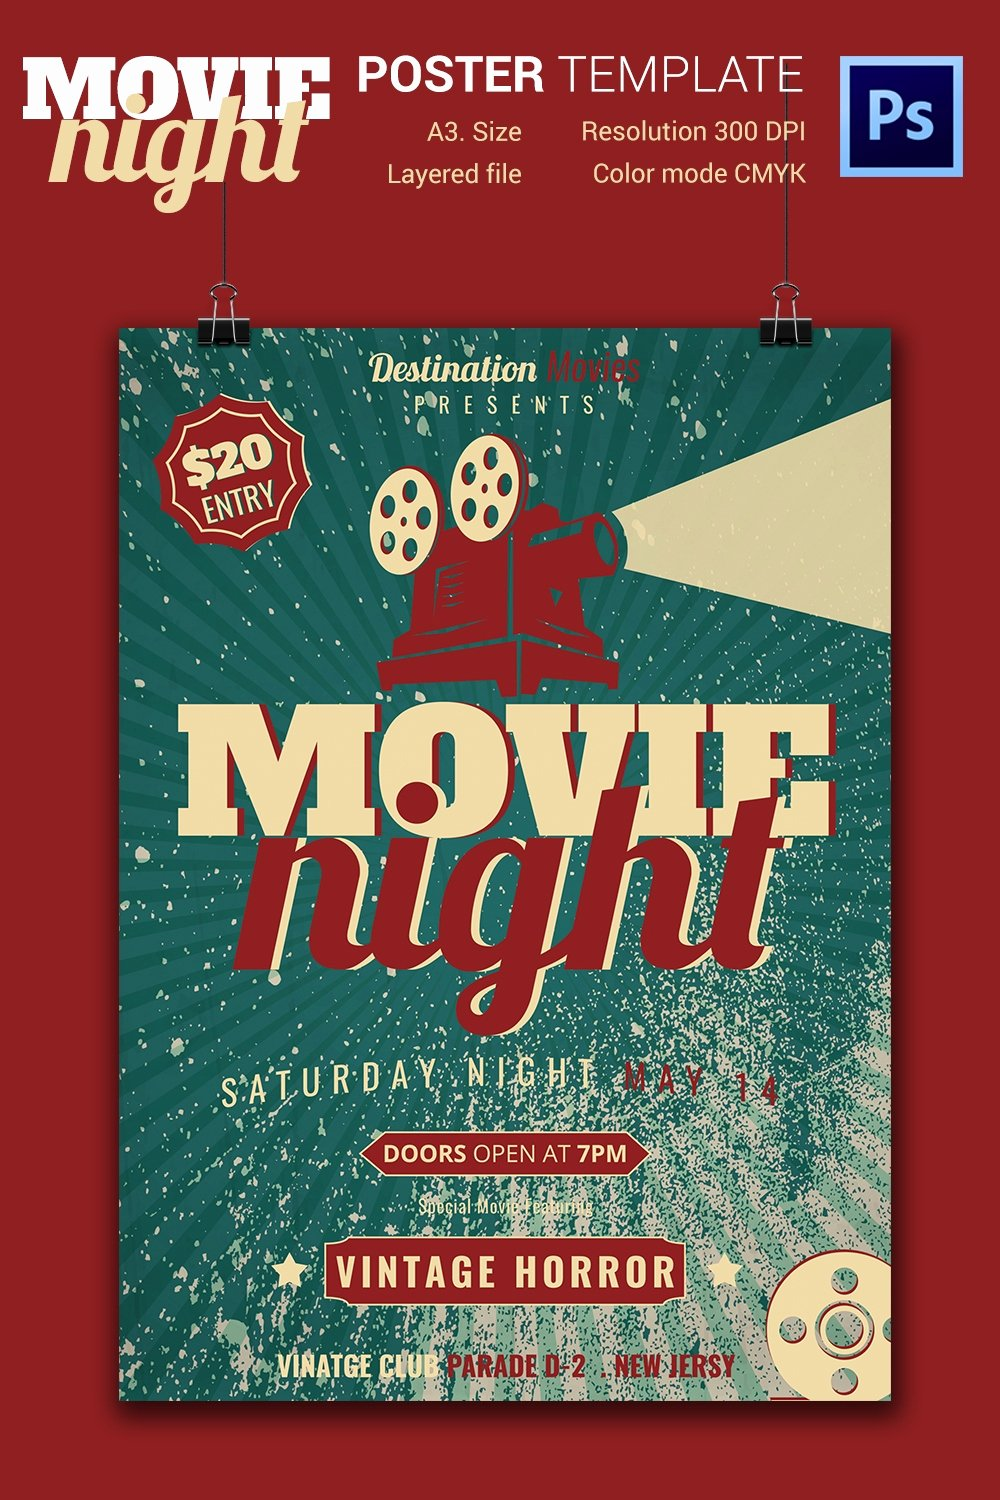 Movie Night Flyer Templates Inspirational Movie Night Flyer Template 25 Free Jpg Psd format Download